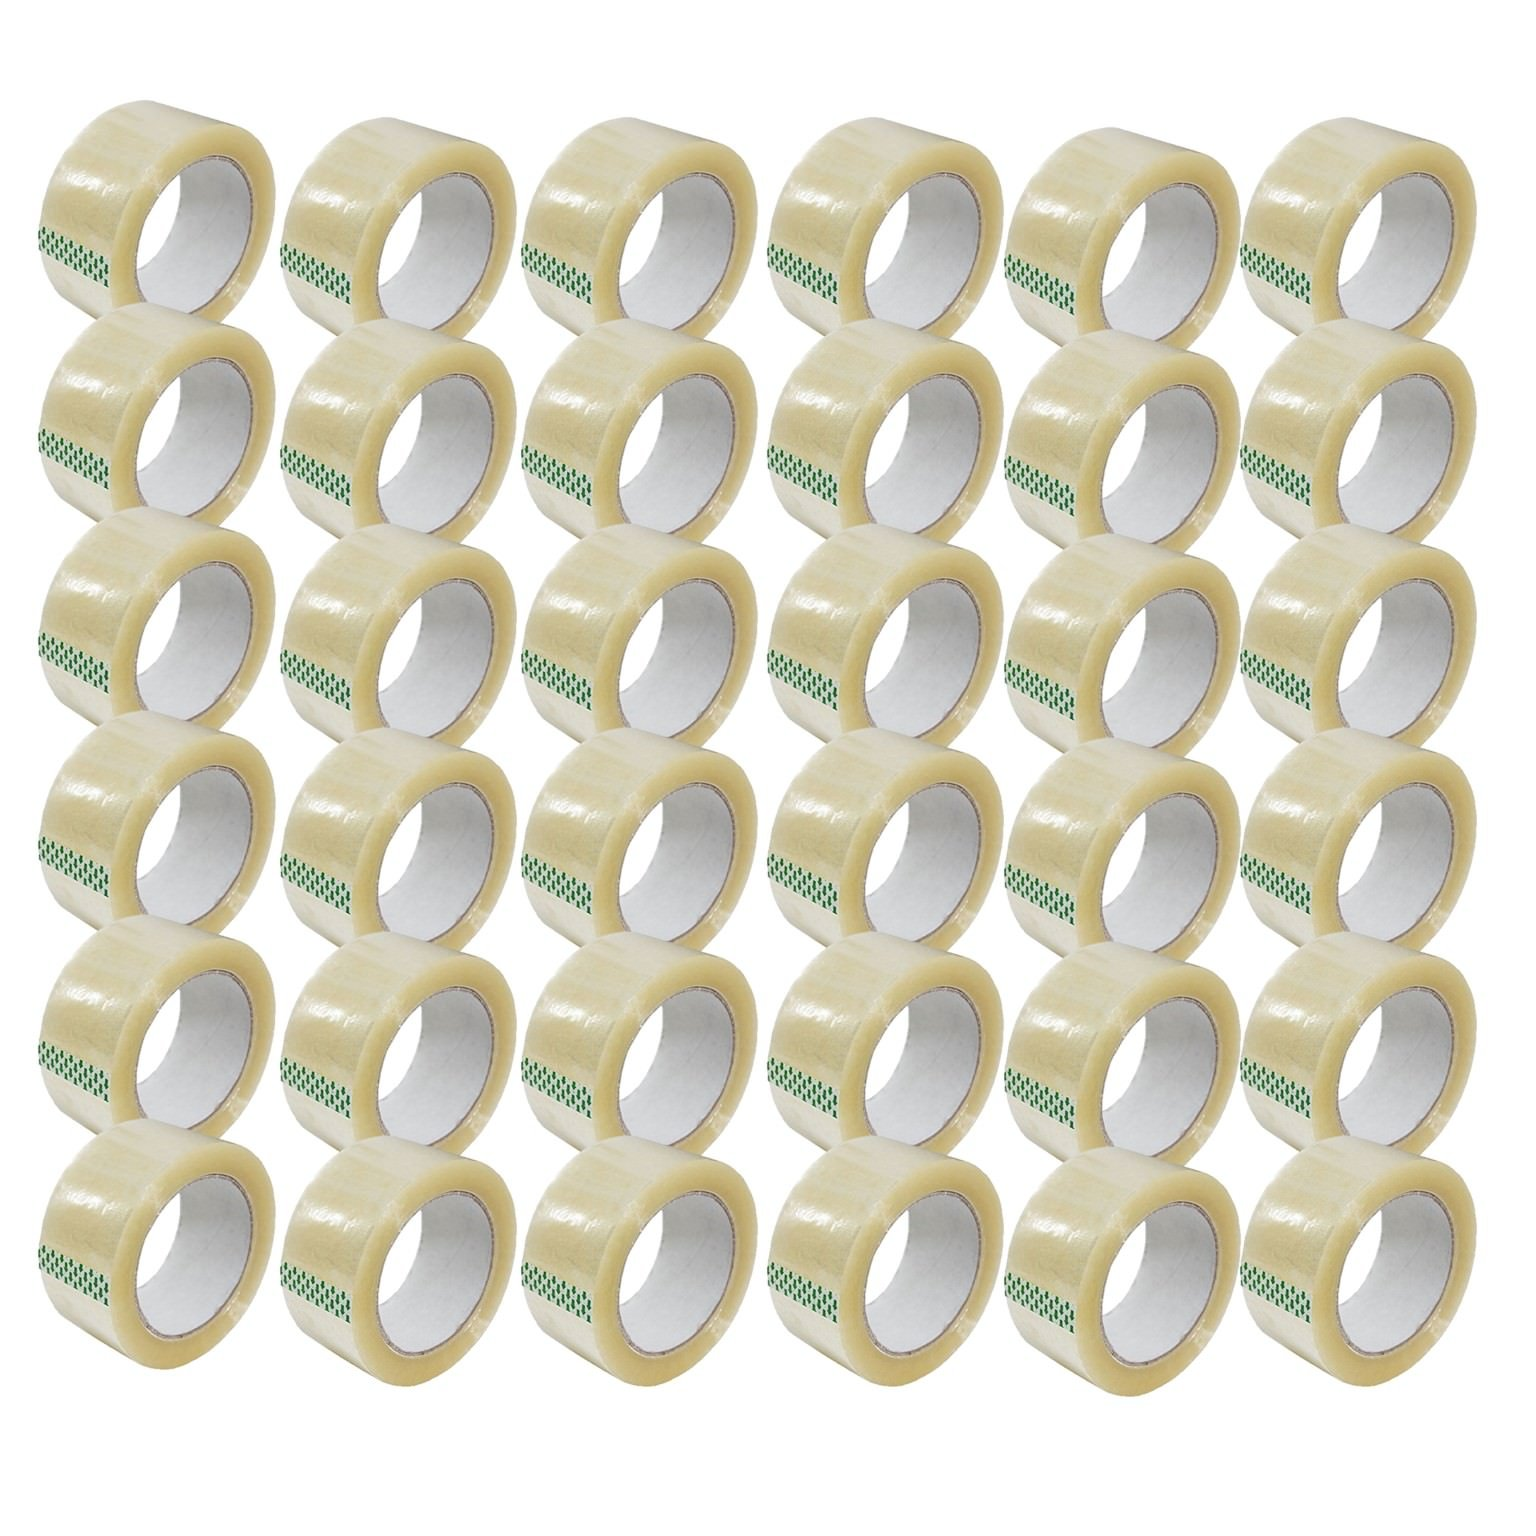 Clear Packing Tape 2'' x 110 Yards Strong Heavy Duty Sealing Adhesive Tapes for Moving Packaging Shipping Office and Storage 36 Rolls